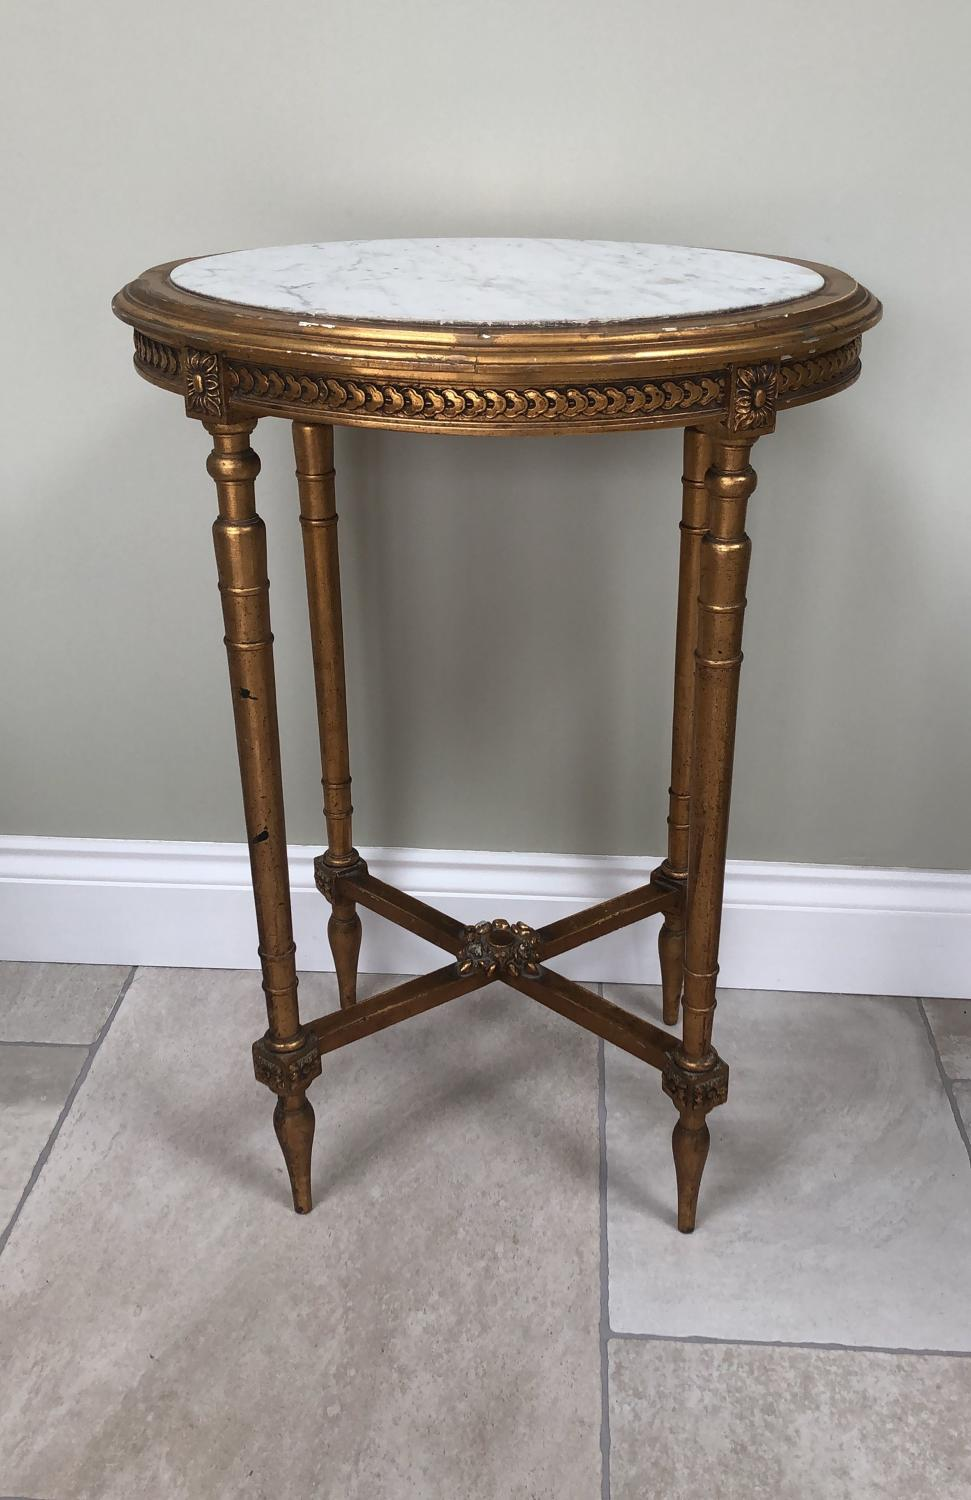 Early 20thC Giltwood Oval Side Table with White Marble Top